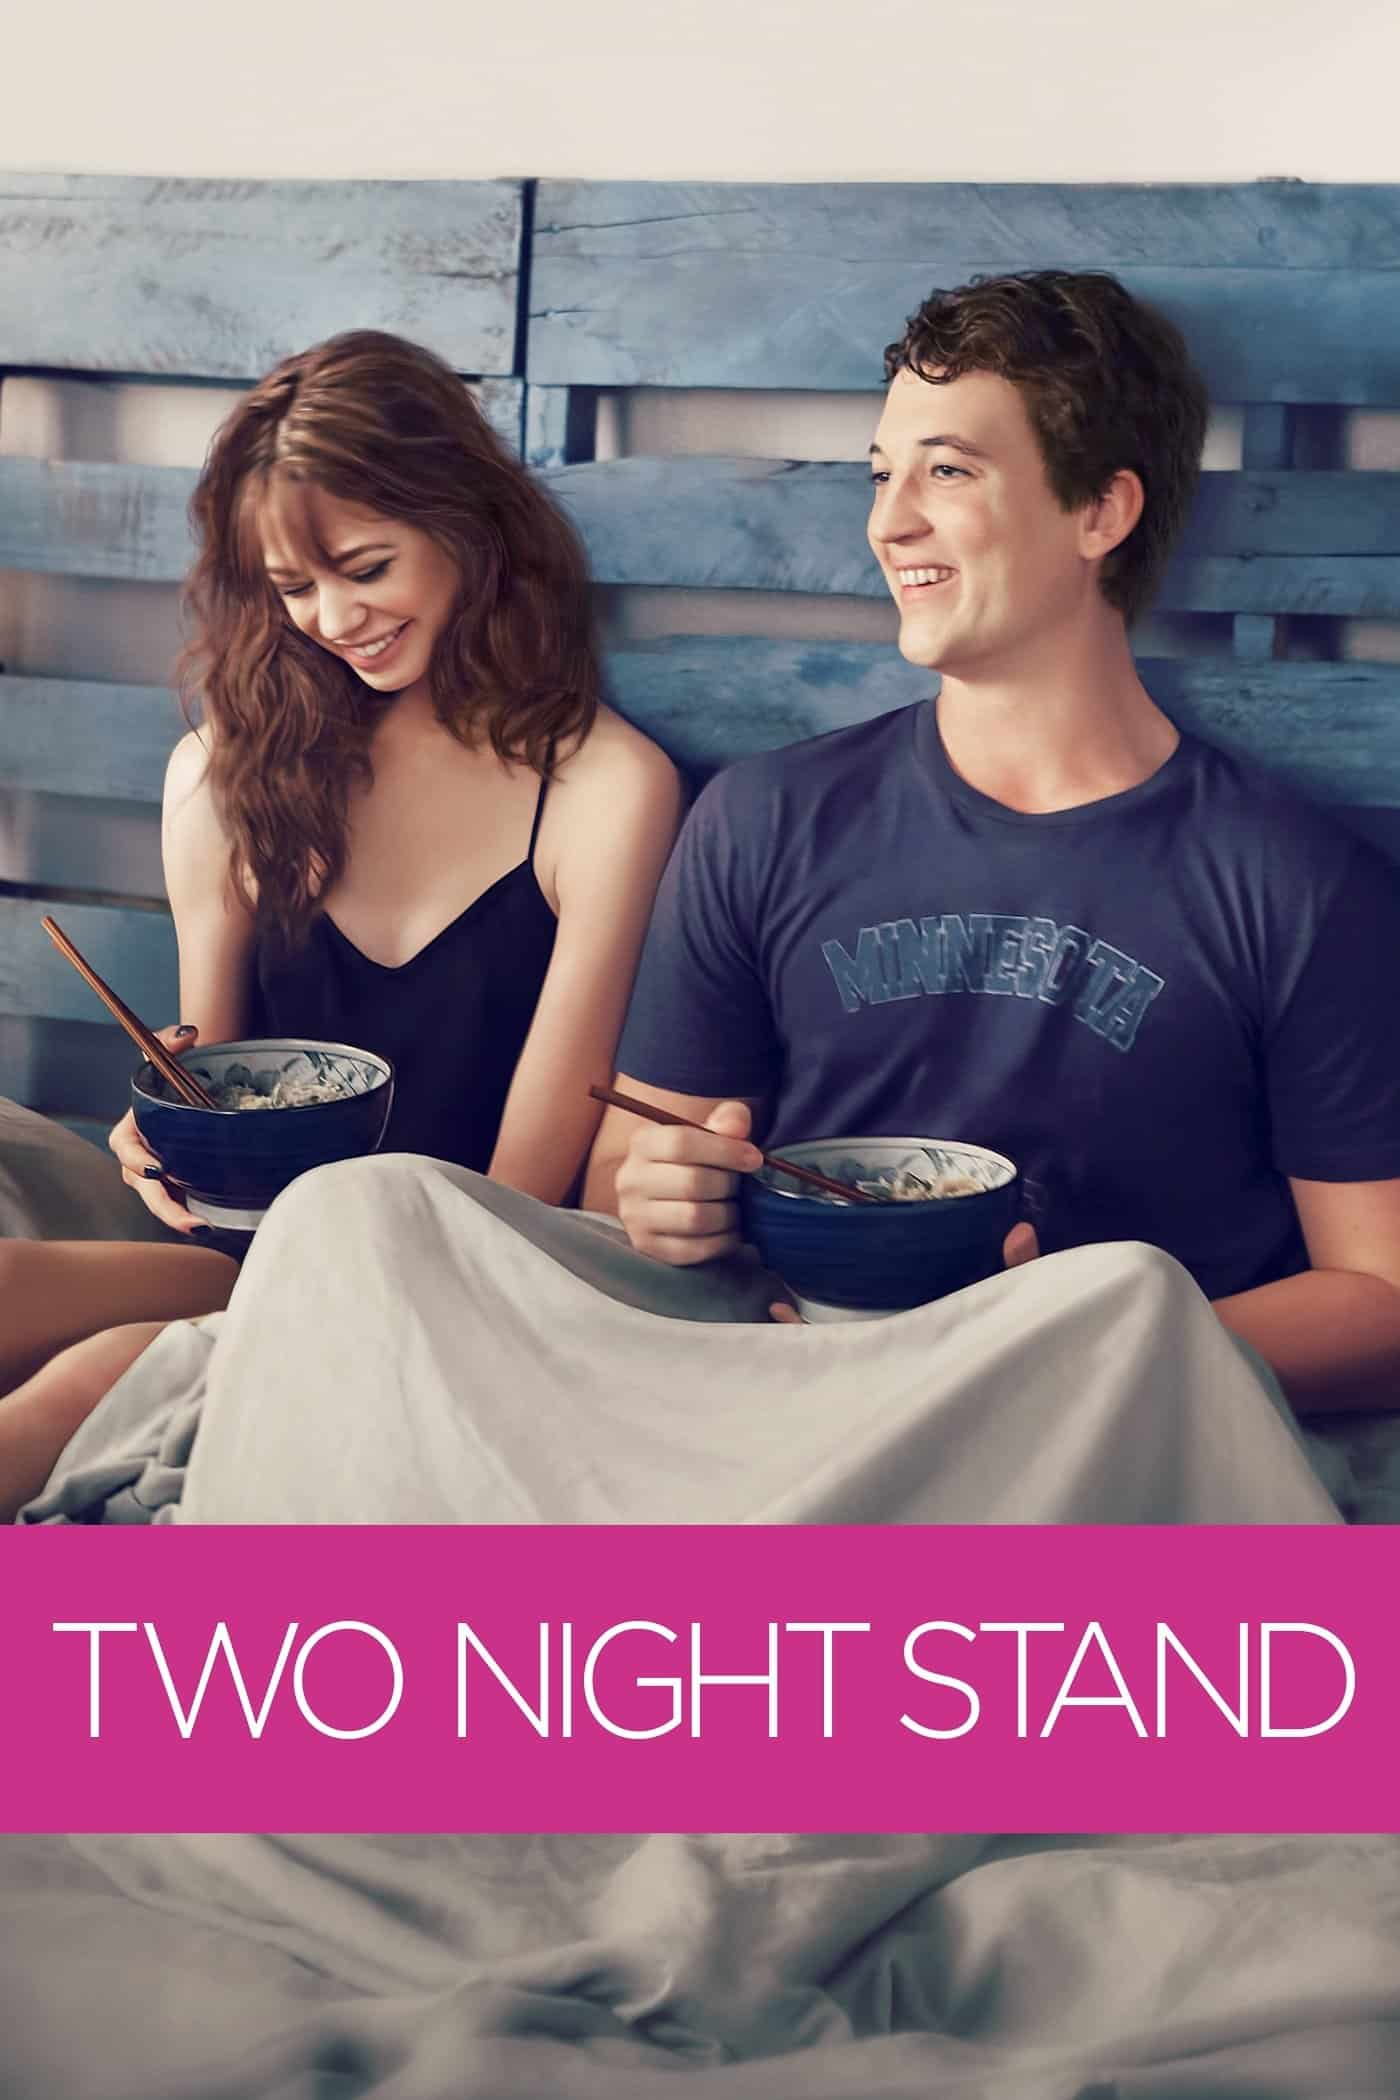 Two Night Stand, 2014